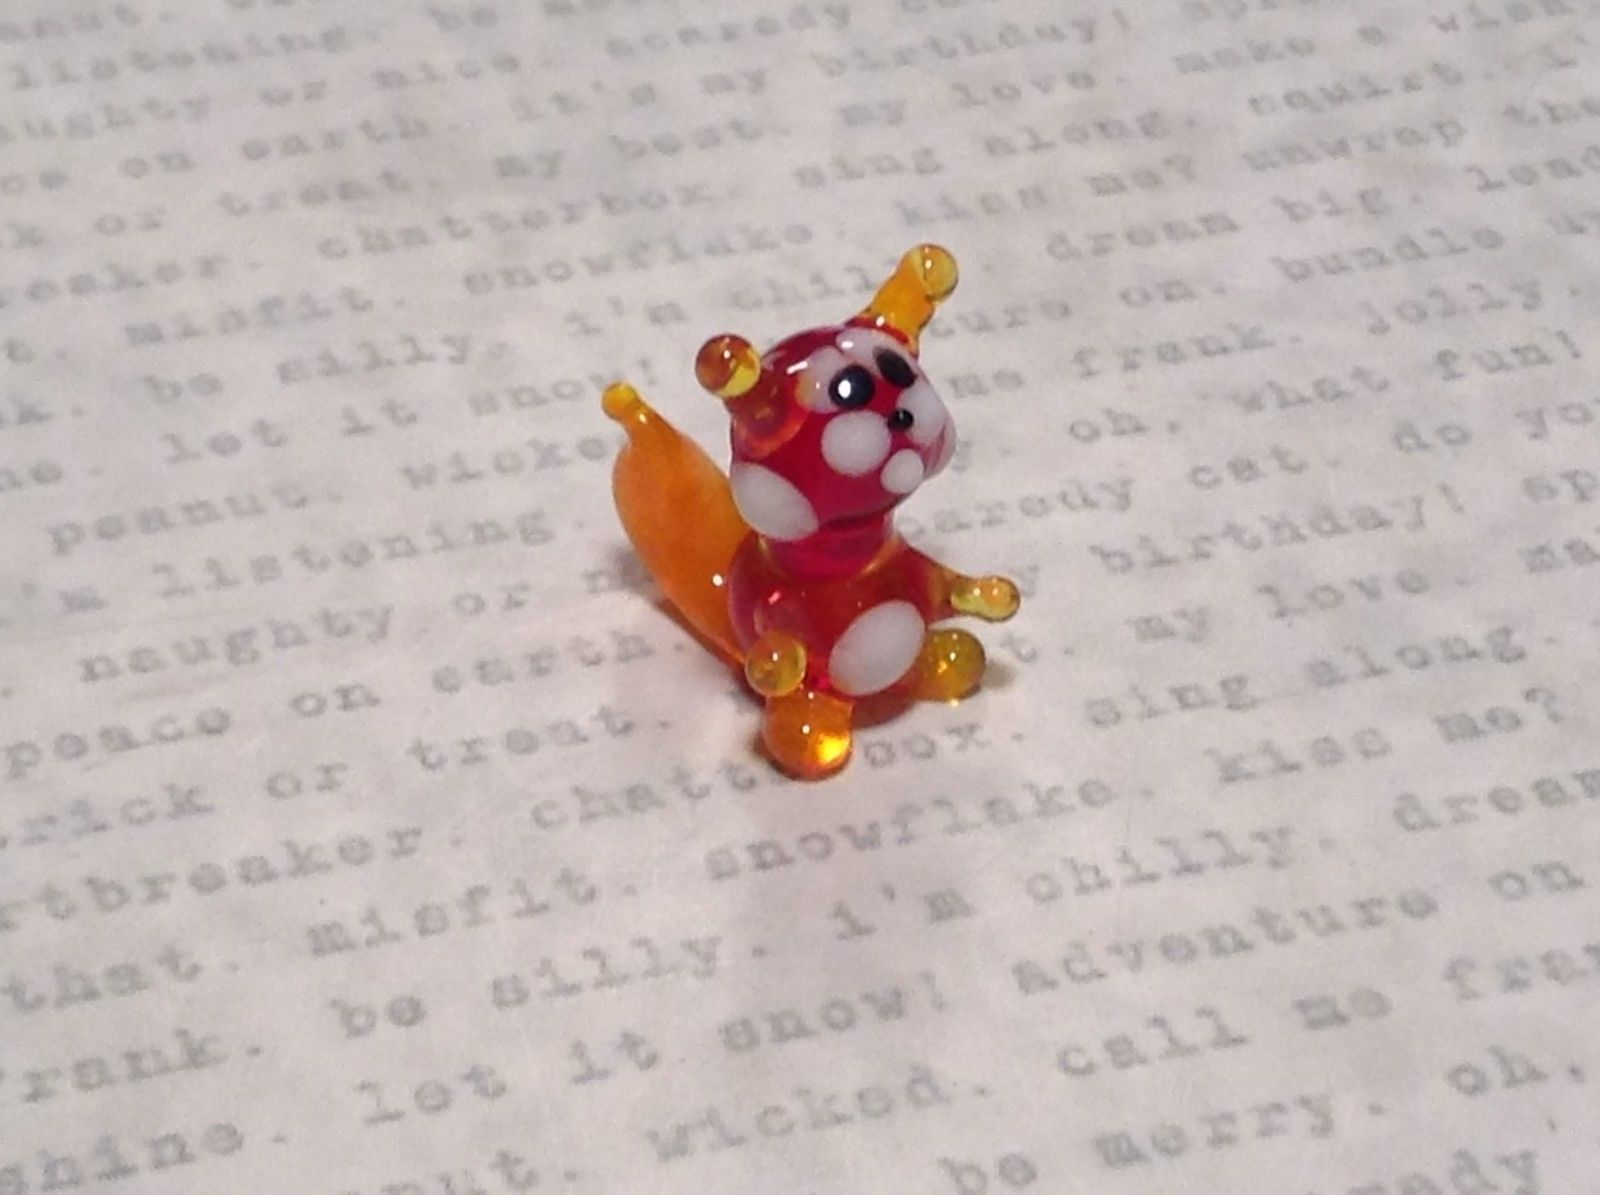 Miniature small hand blown glass red squirrel made USA NIB